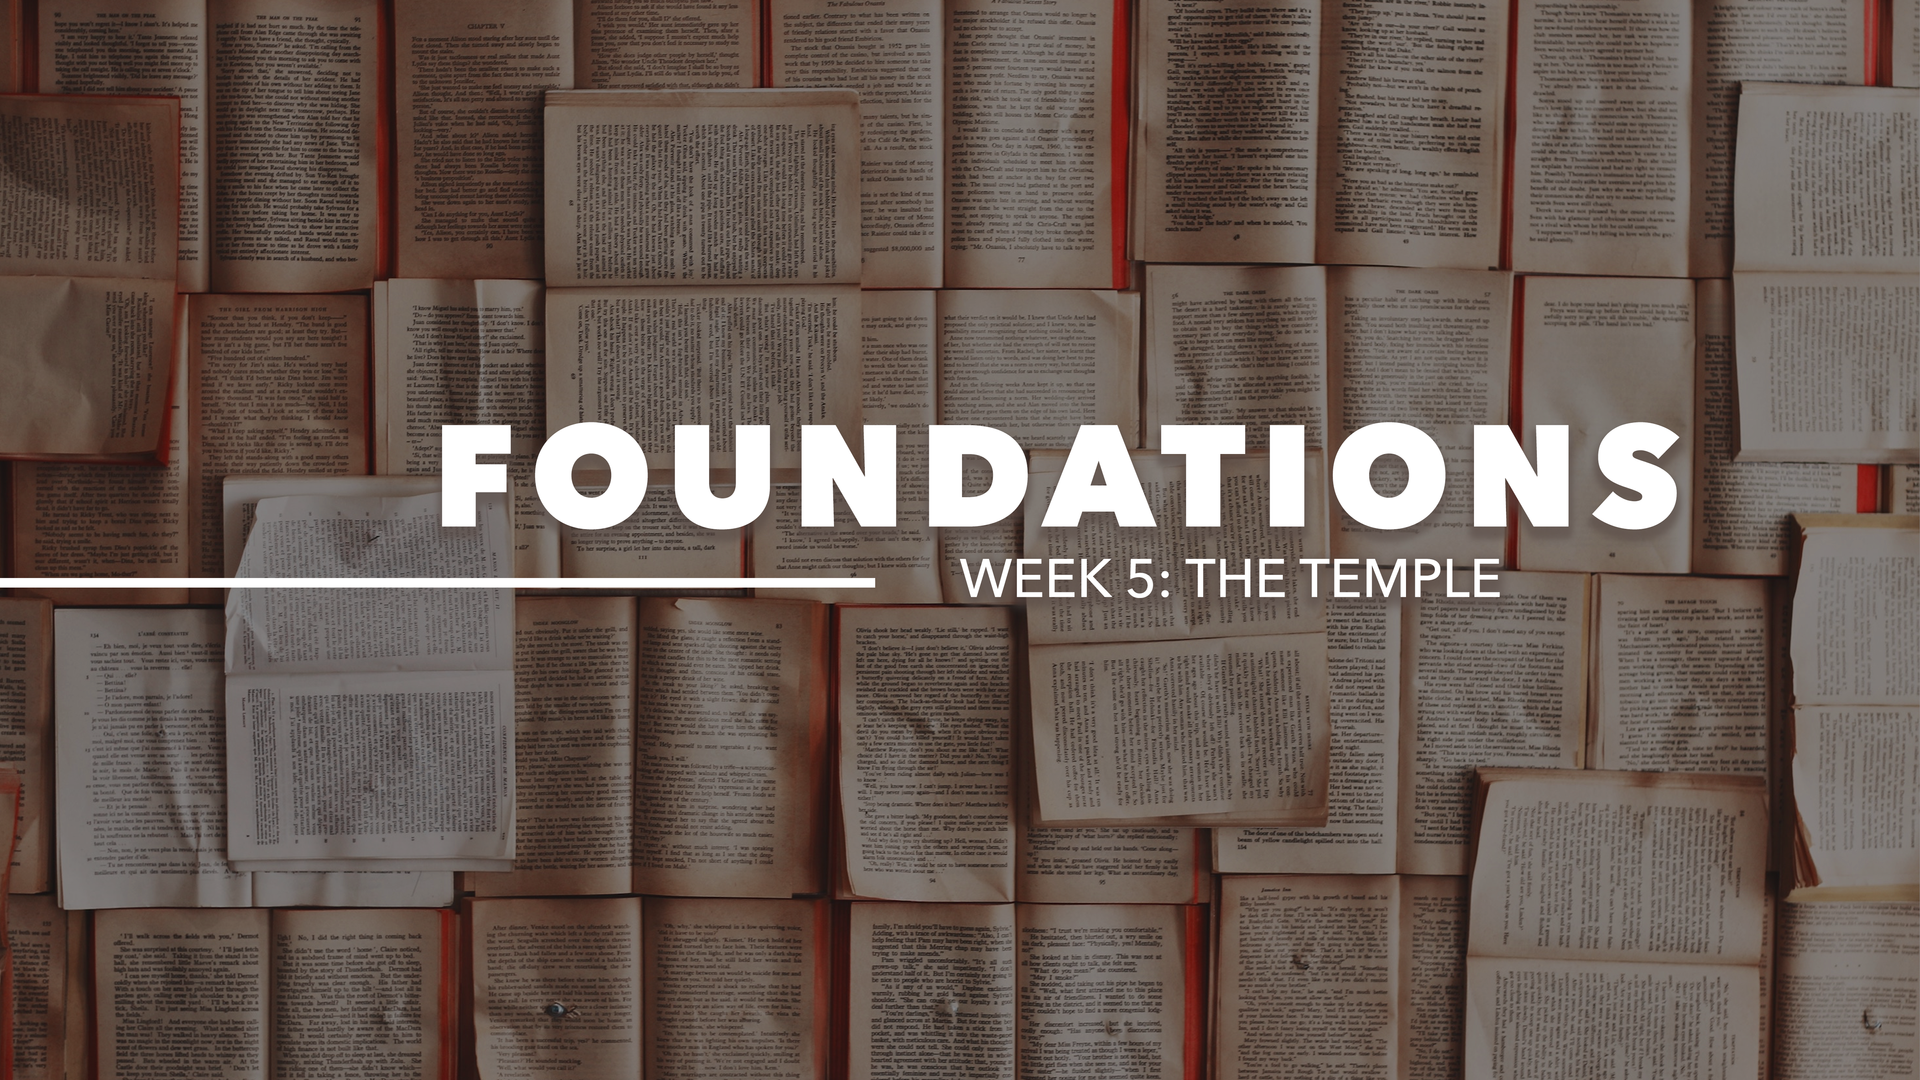 Week 5: The Temple